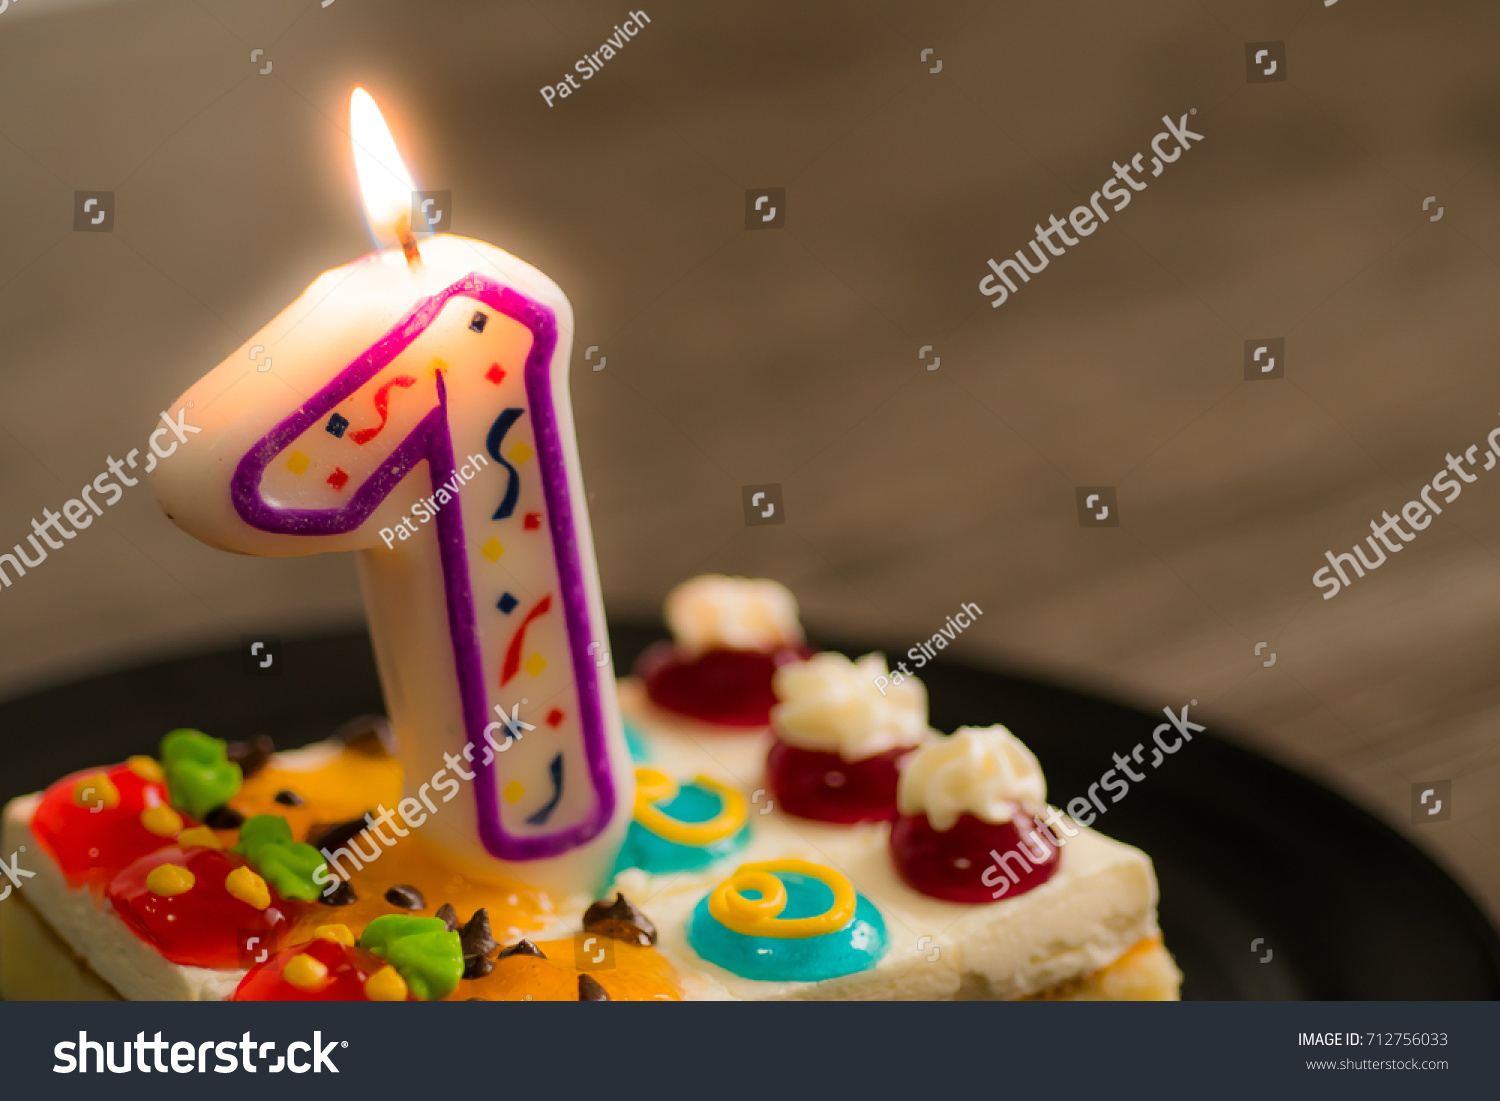 Birthday Celebrate Cakes Number One Candle Stock Photo Royalty Free